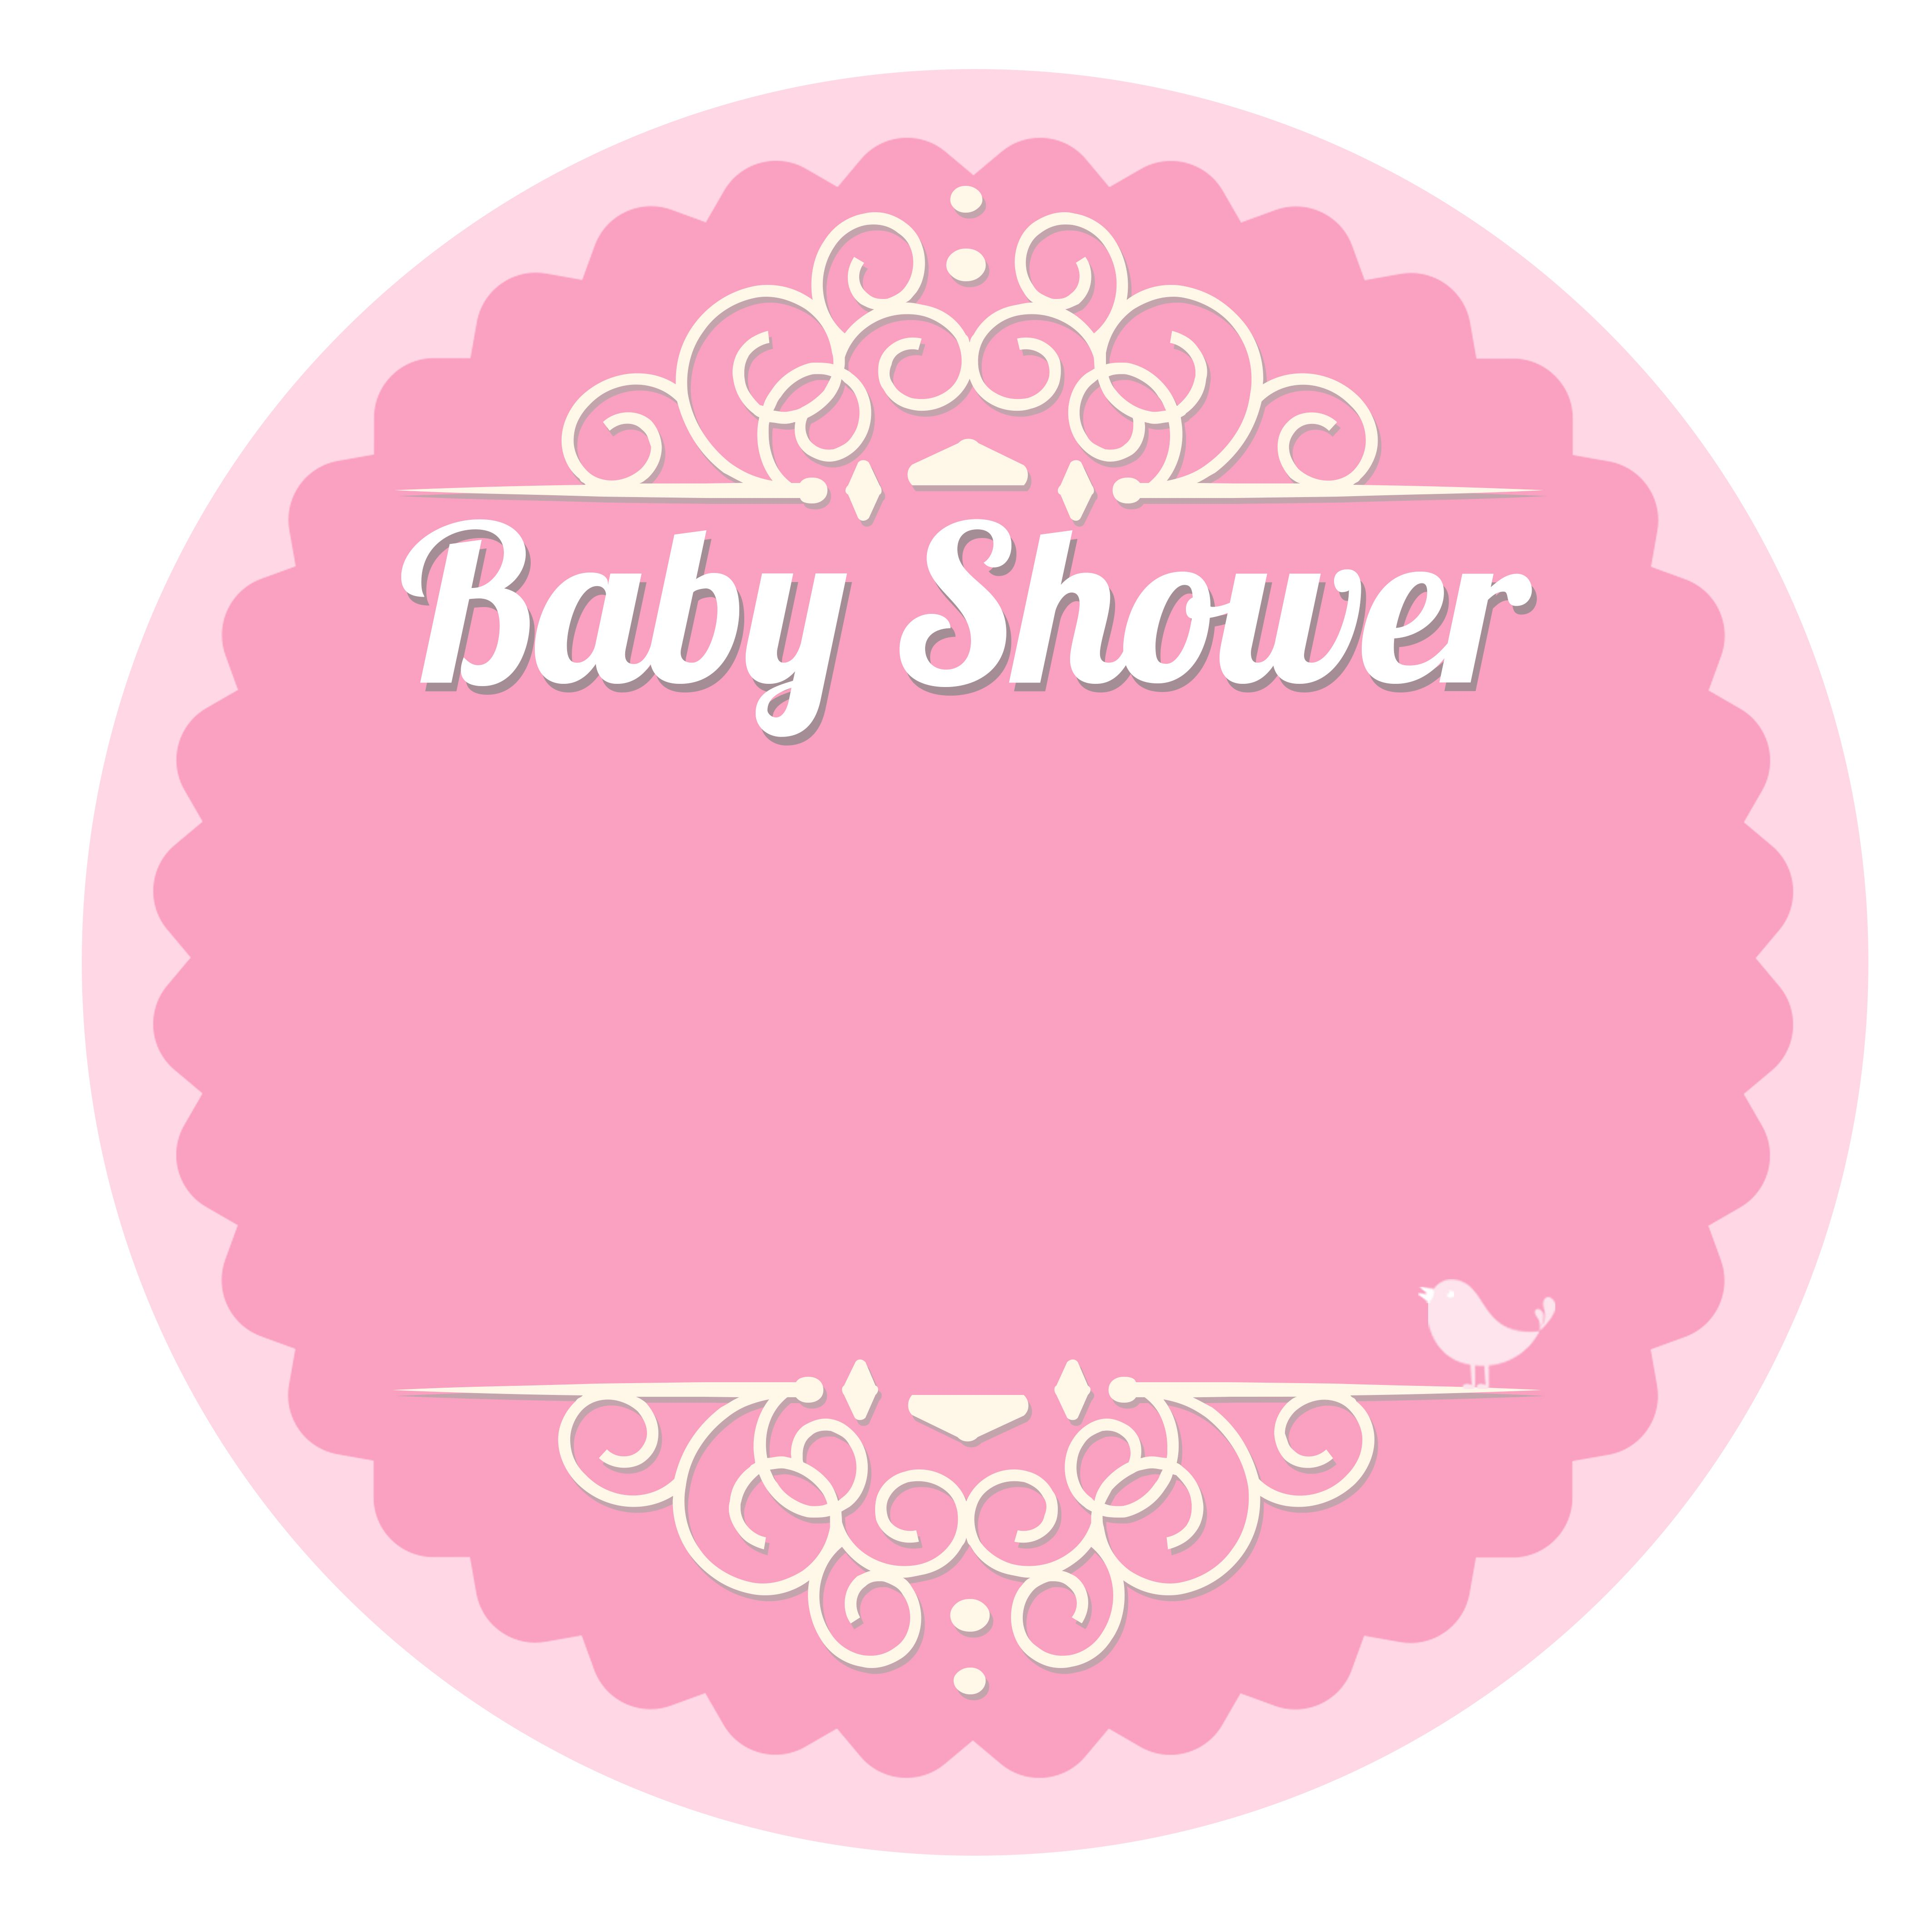 Phrases For Baby Shower Invitations as adorable invitations template